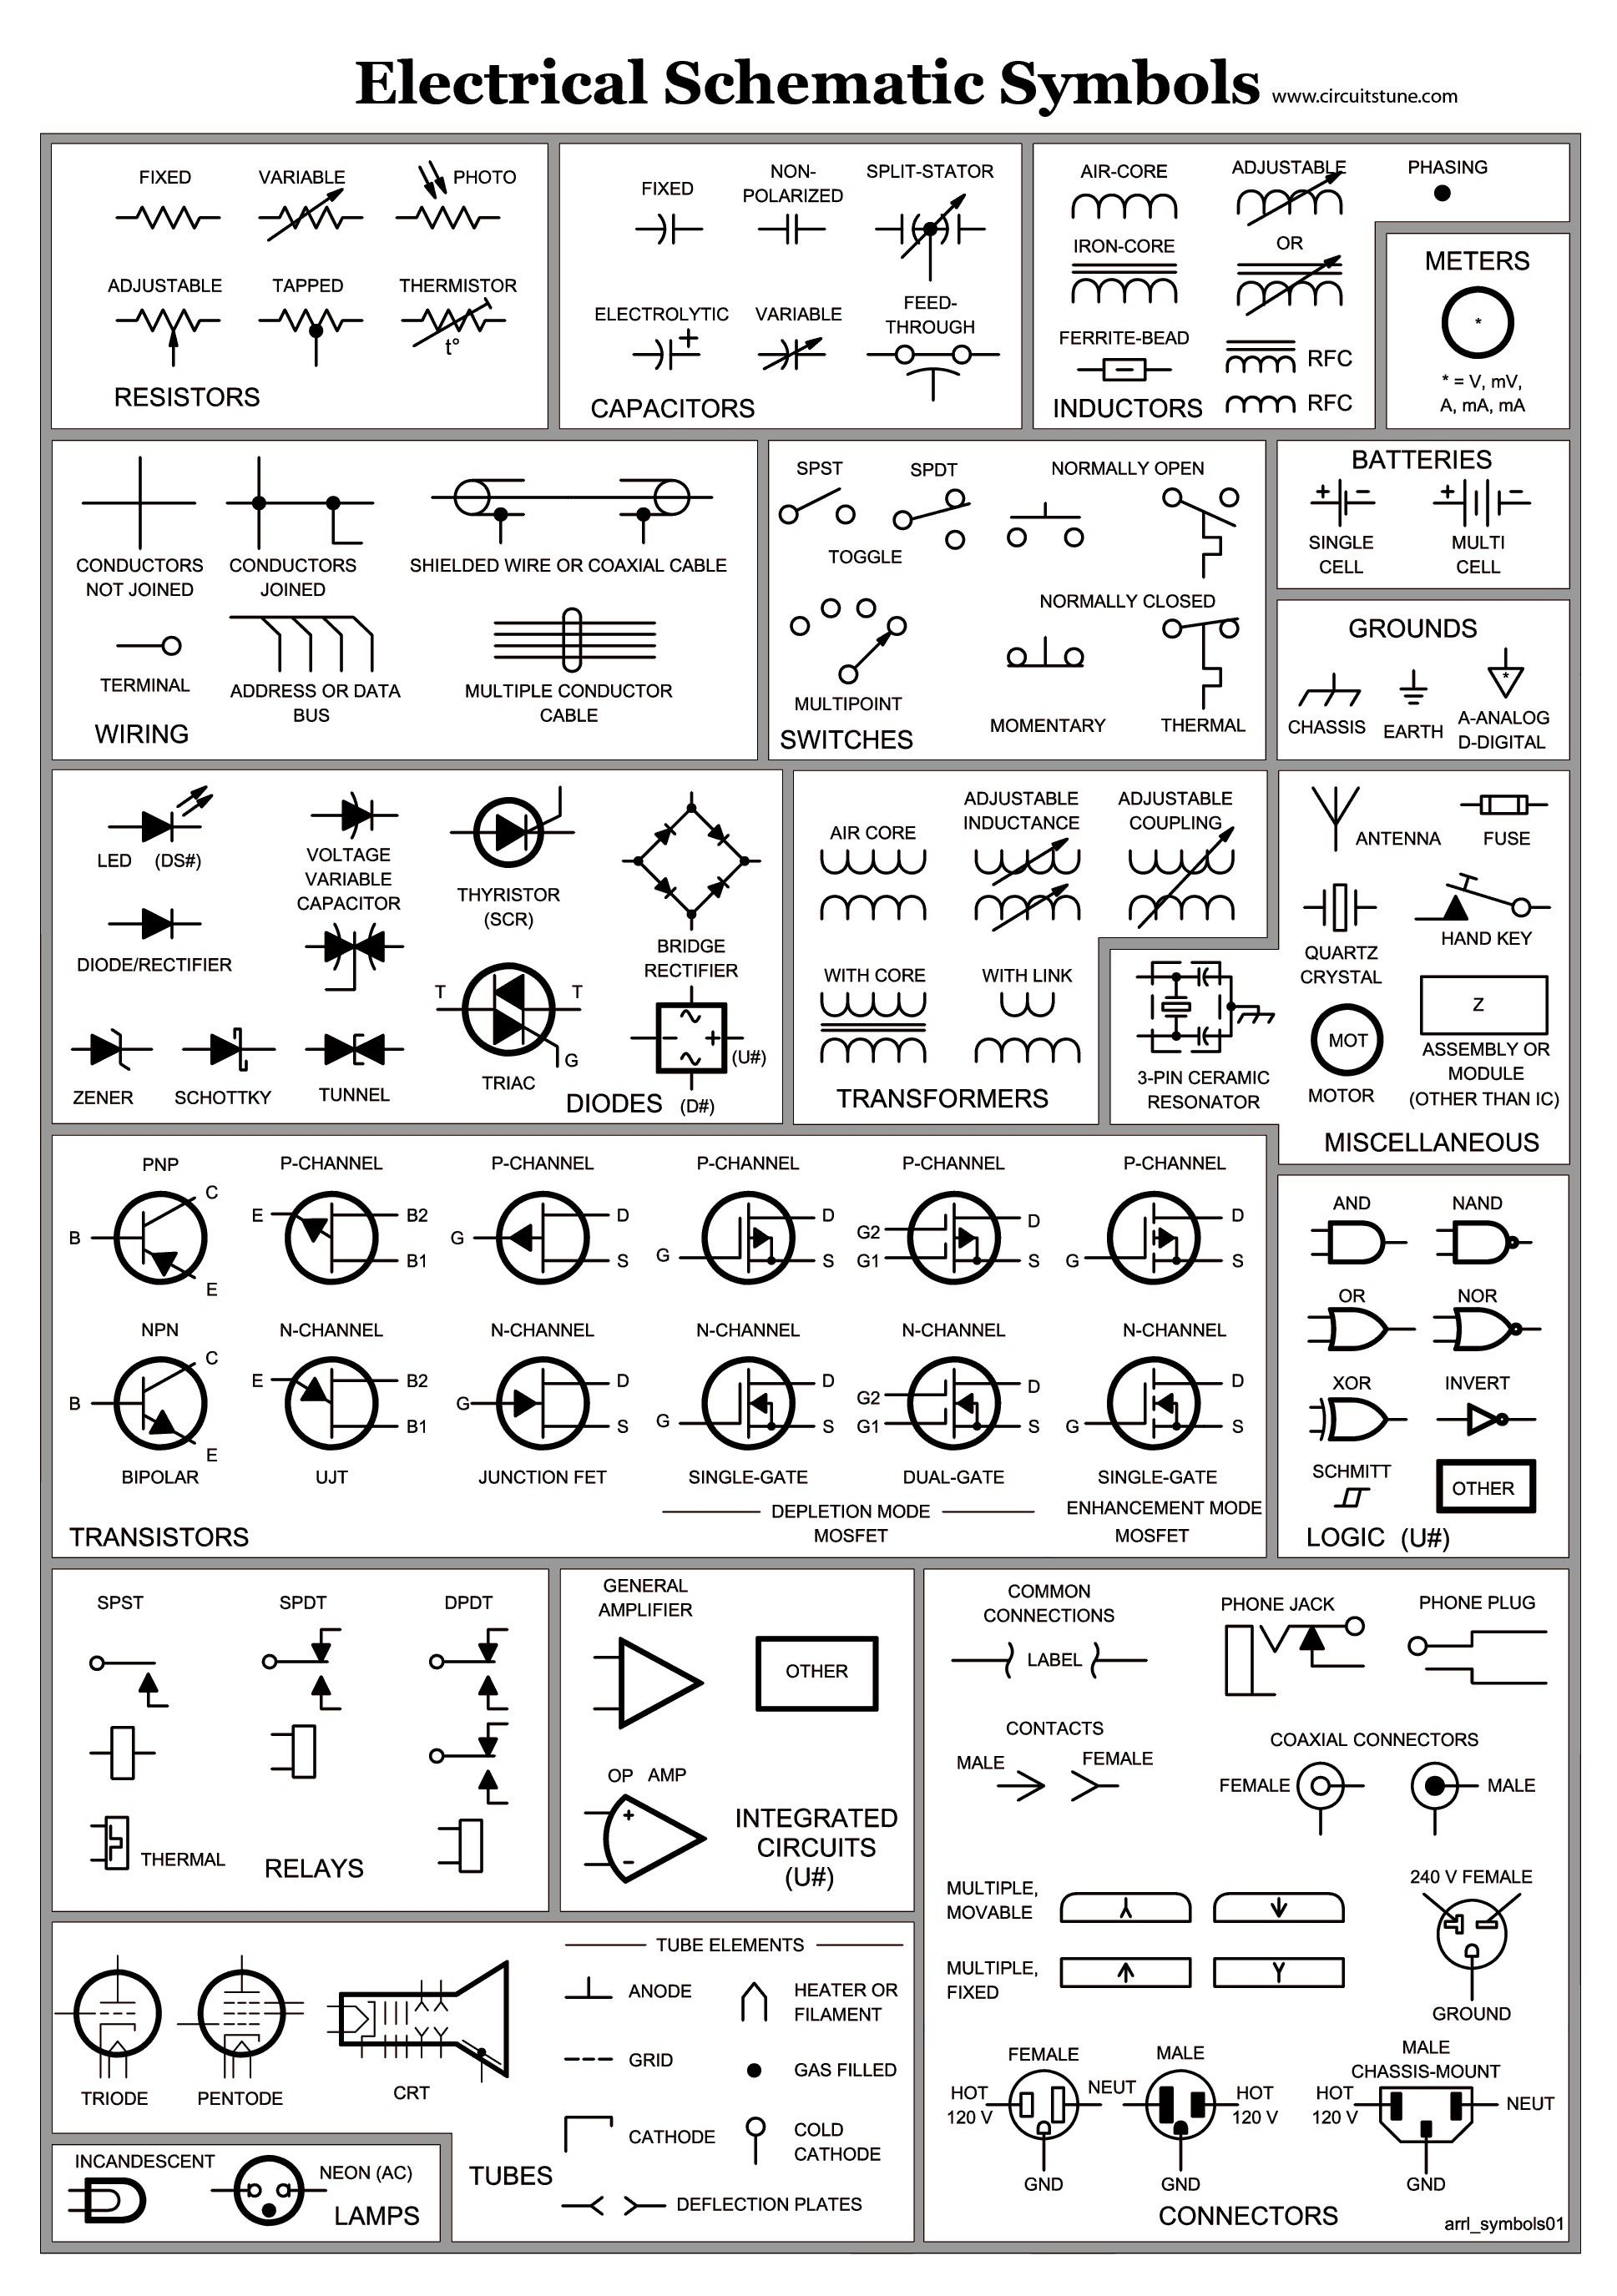 Auto Electrical Wiring Diagram Manual Save Electrical